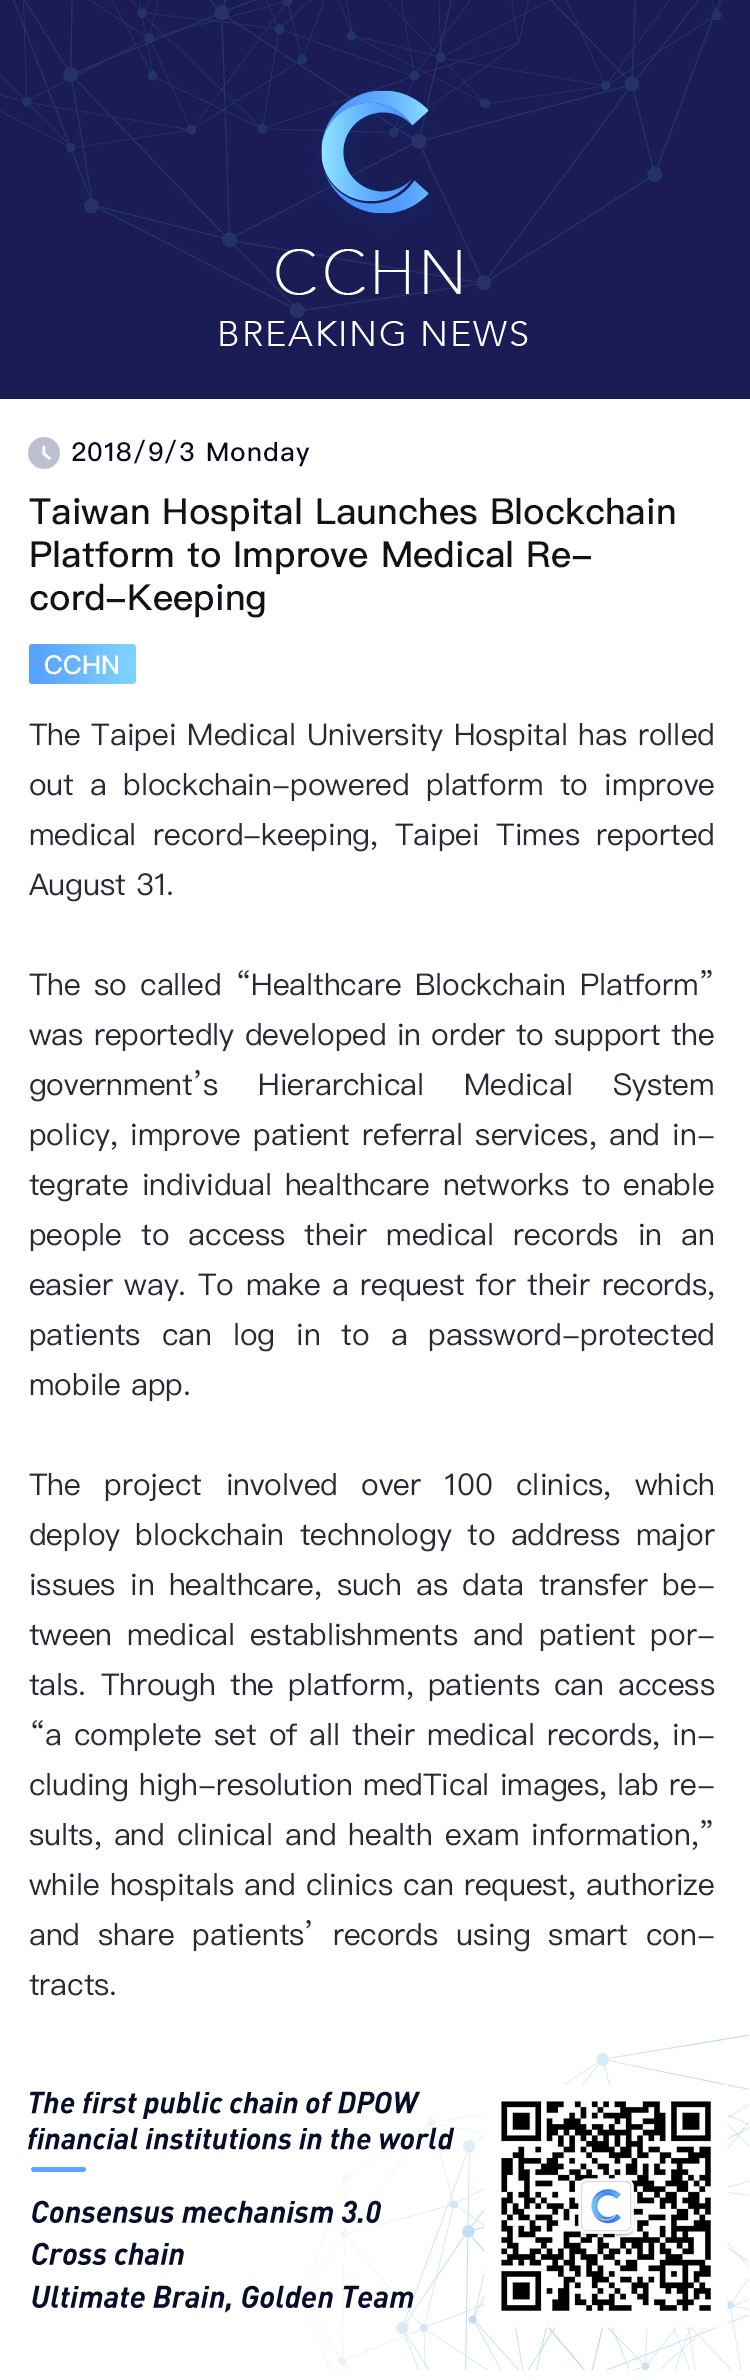 The Taipei Medical University Hospital has rolled out a blockchain